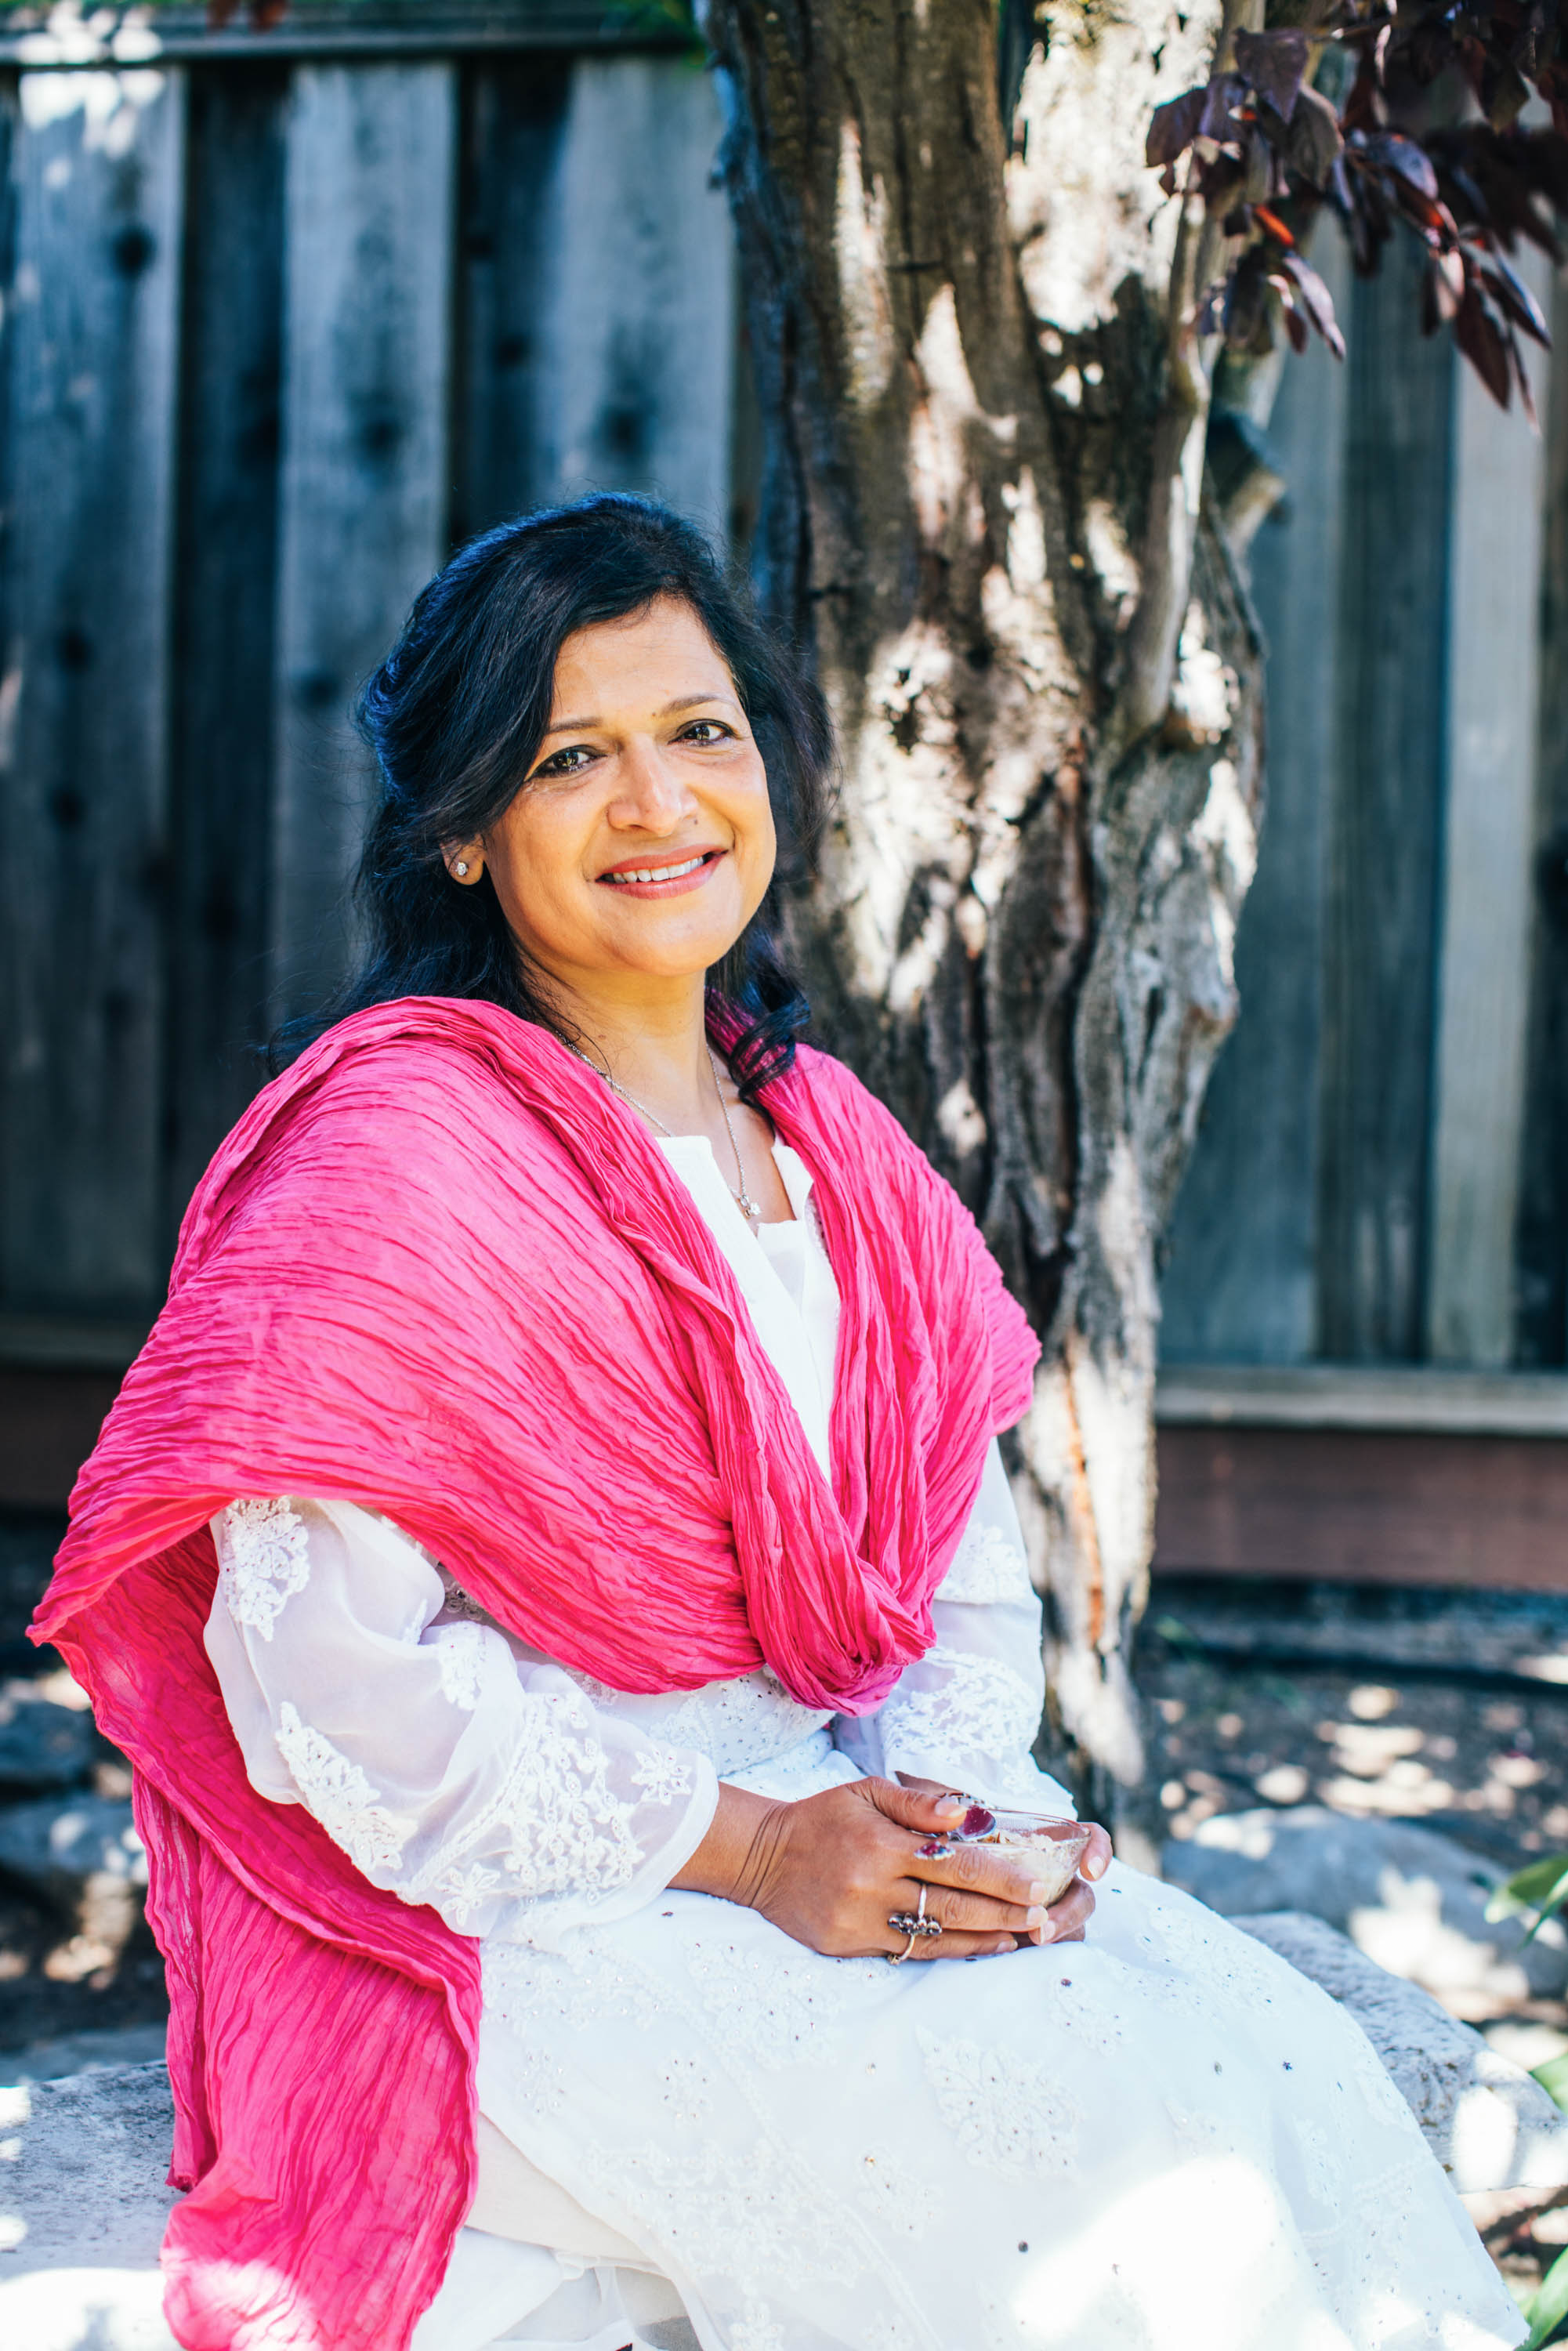 Sarika Agrawal - Sarika Agrawal is a designer, creative, and mother to two wonderful children. She's an active member in her local community in Cupertino and regularly teaches Hindi classes to young students. She's thrilled to bring this cookbook to you filled with old and new recipes.